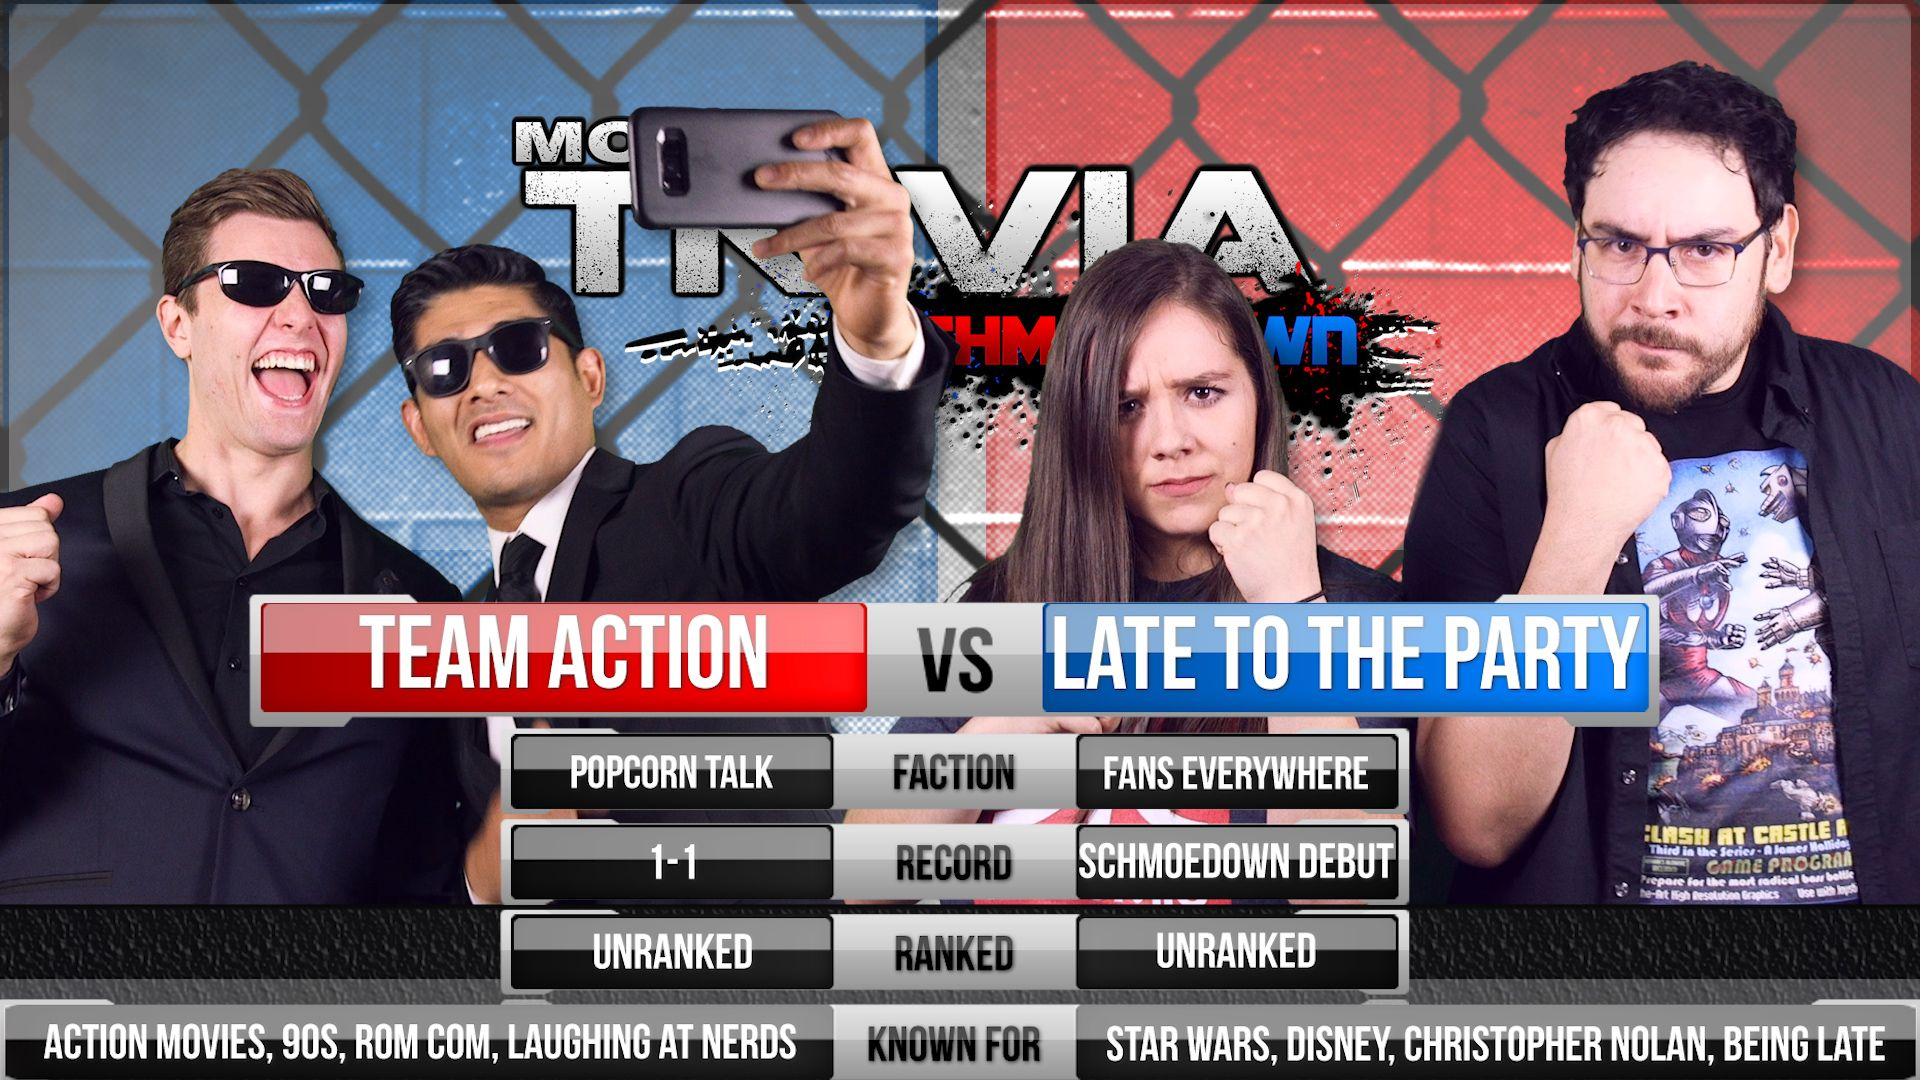 Movie Trivia Schmoedown: Team Action vs  Late to the Party